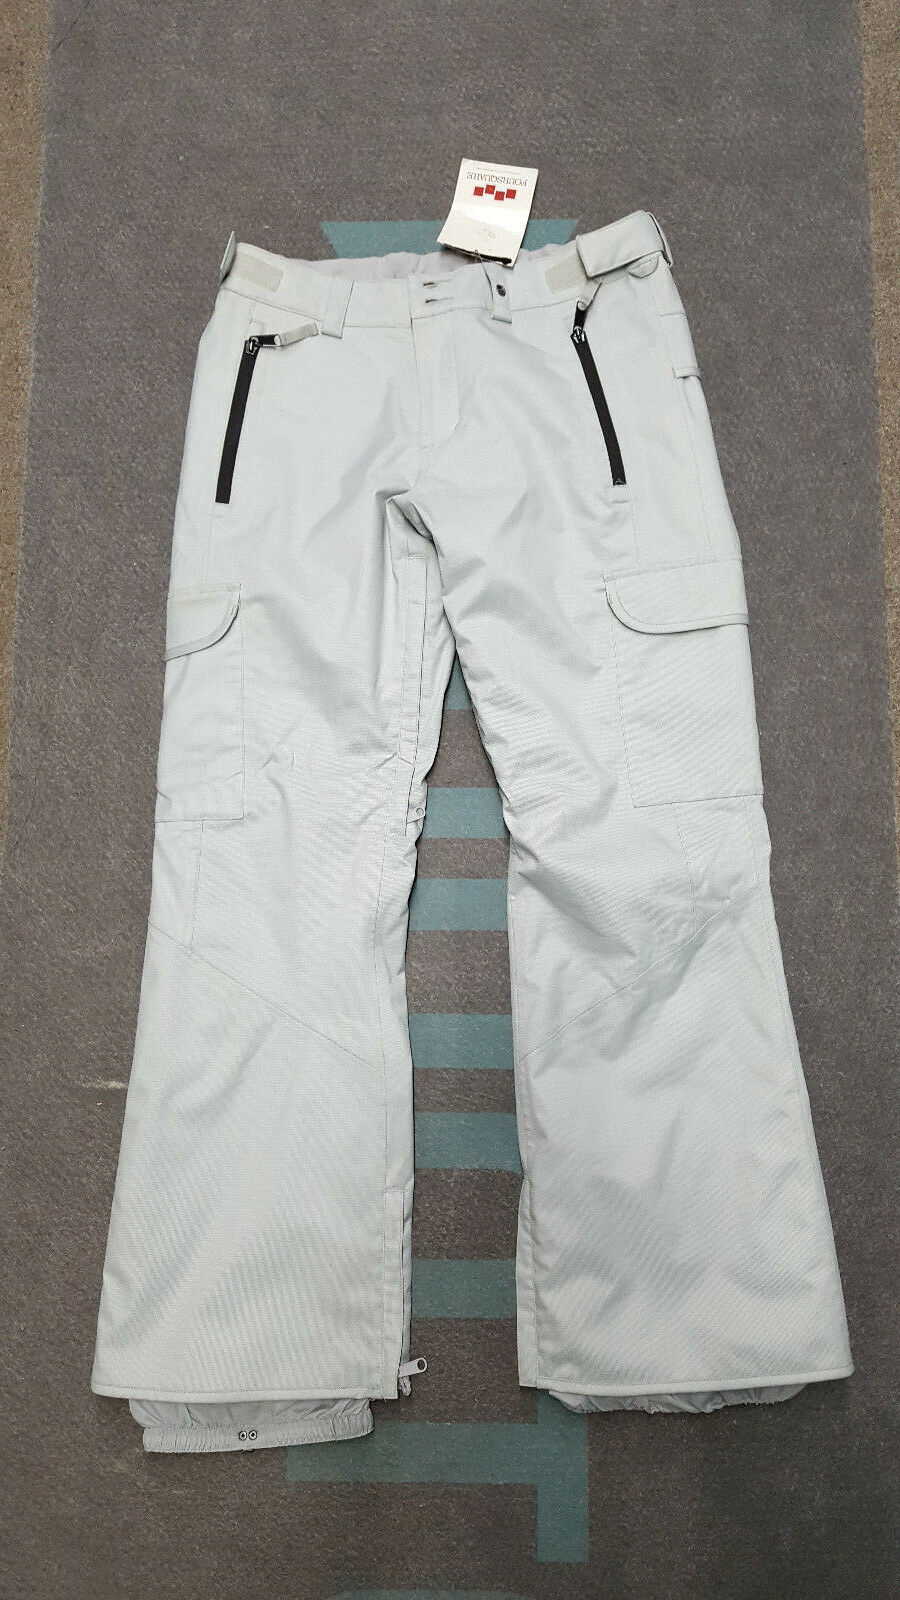 Foursquare Wms Bevel Snow Pant Medium (Granite)